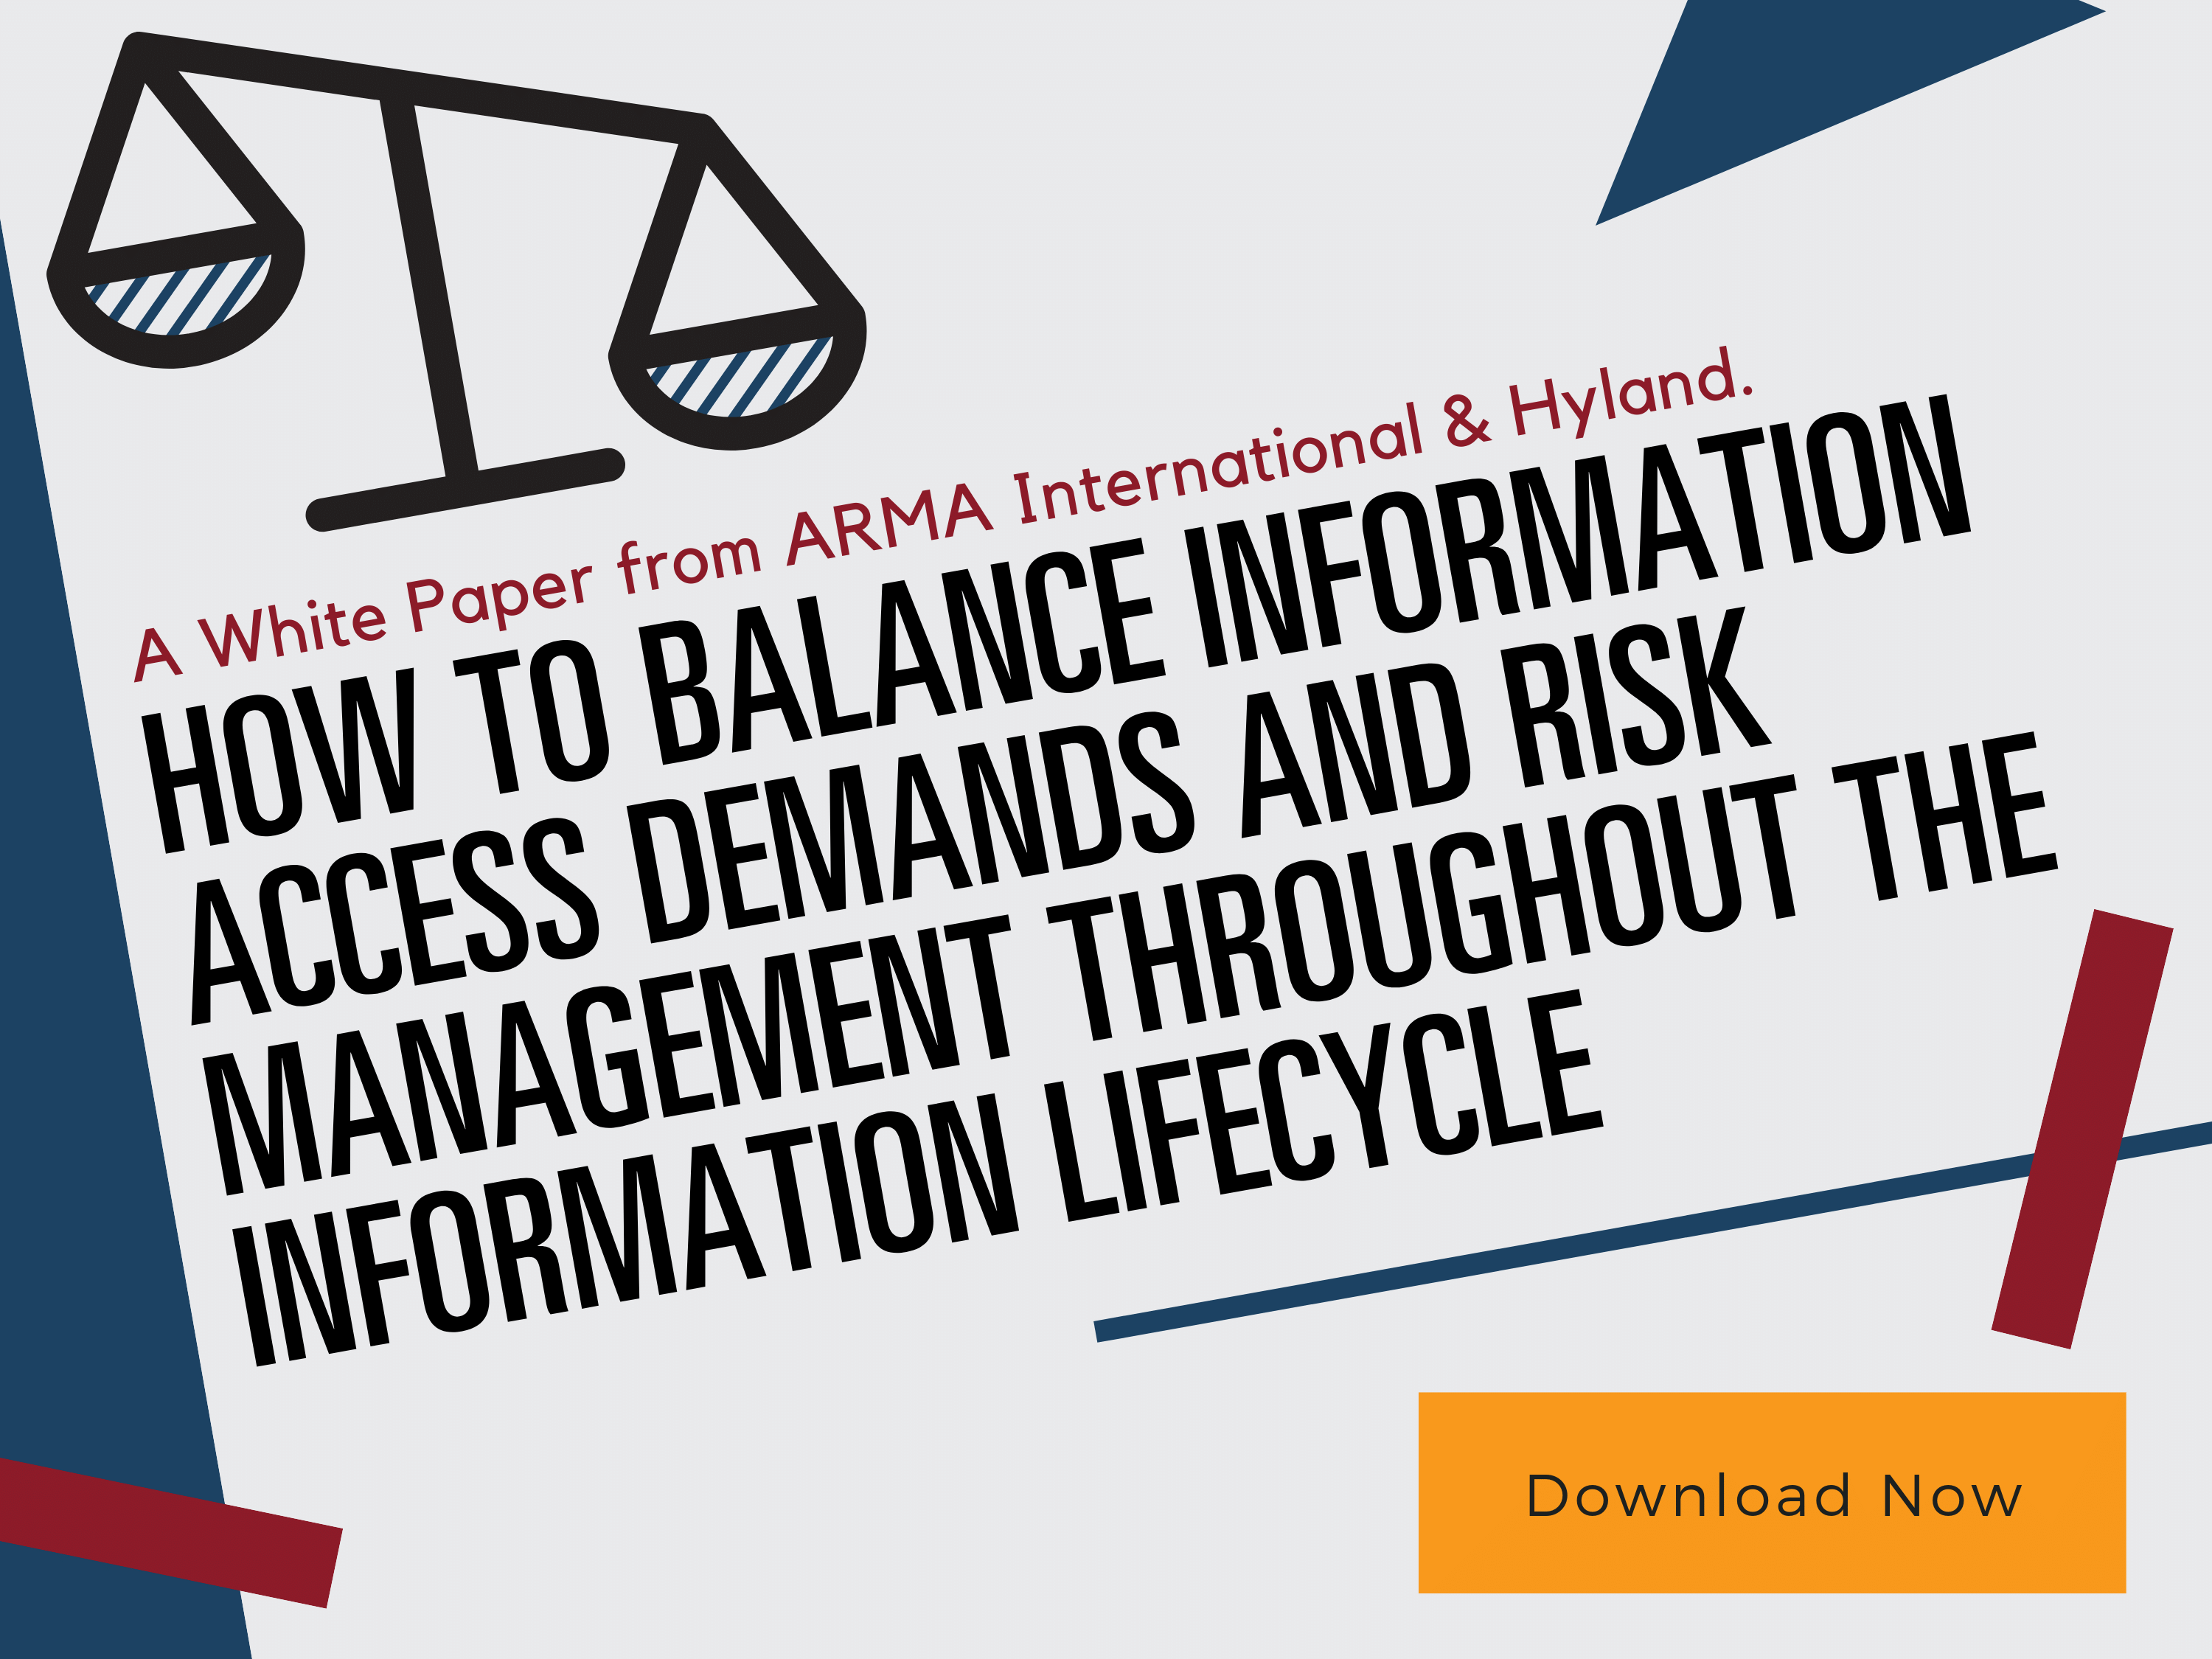 How to Balance Information Access Demands and Risk Management Throughout the Information Lifecycle